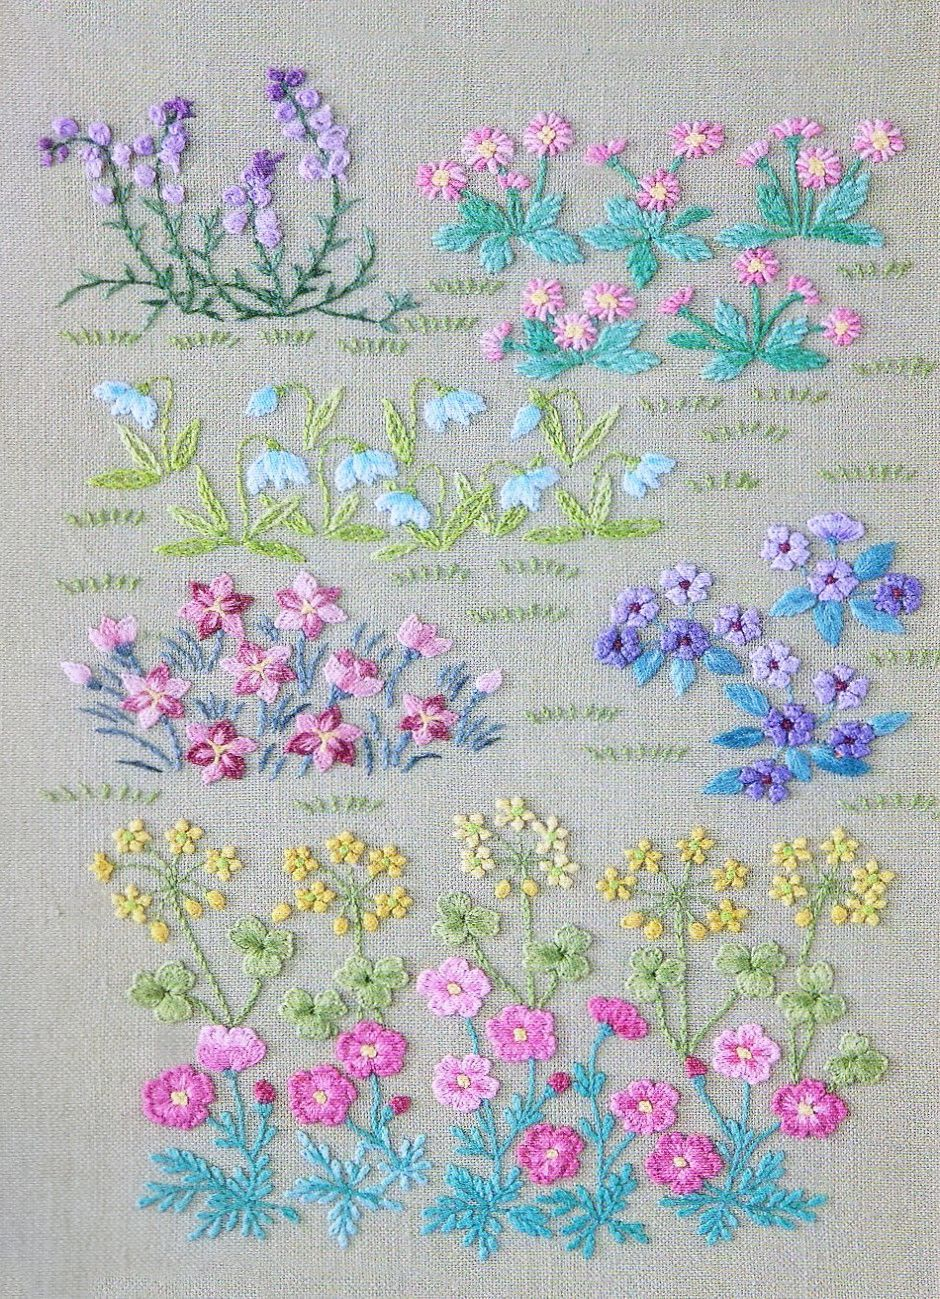 Hemming HEM2357 15 Piece Needle Crewel Embroidery, Size 7